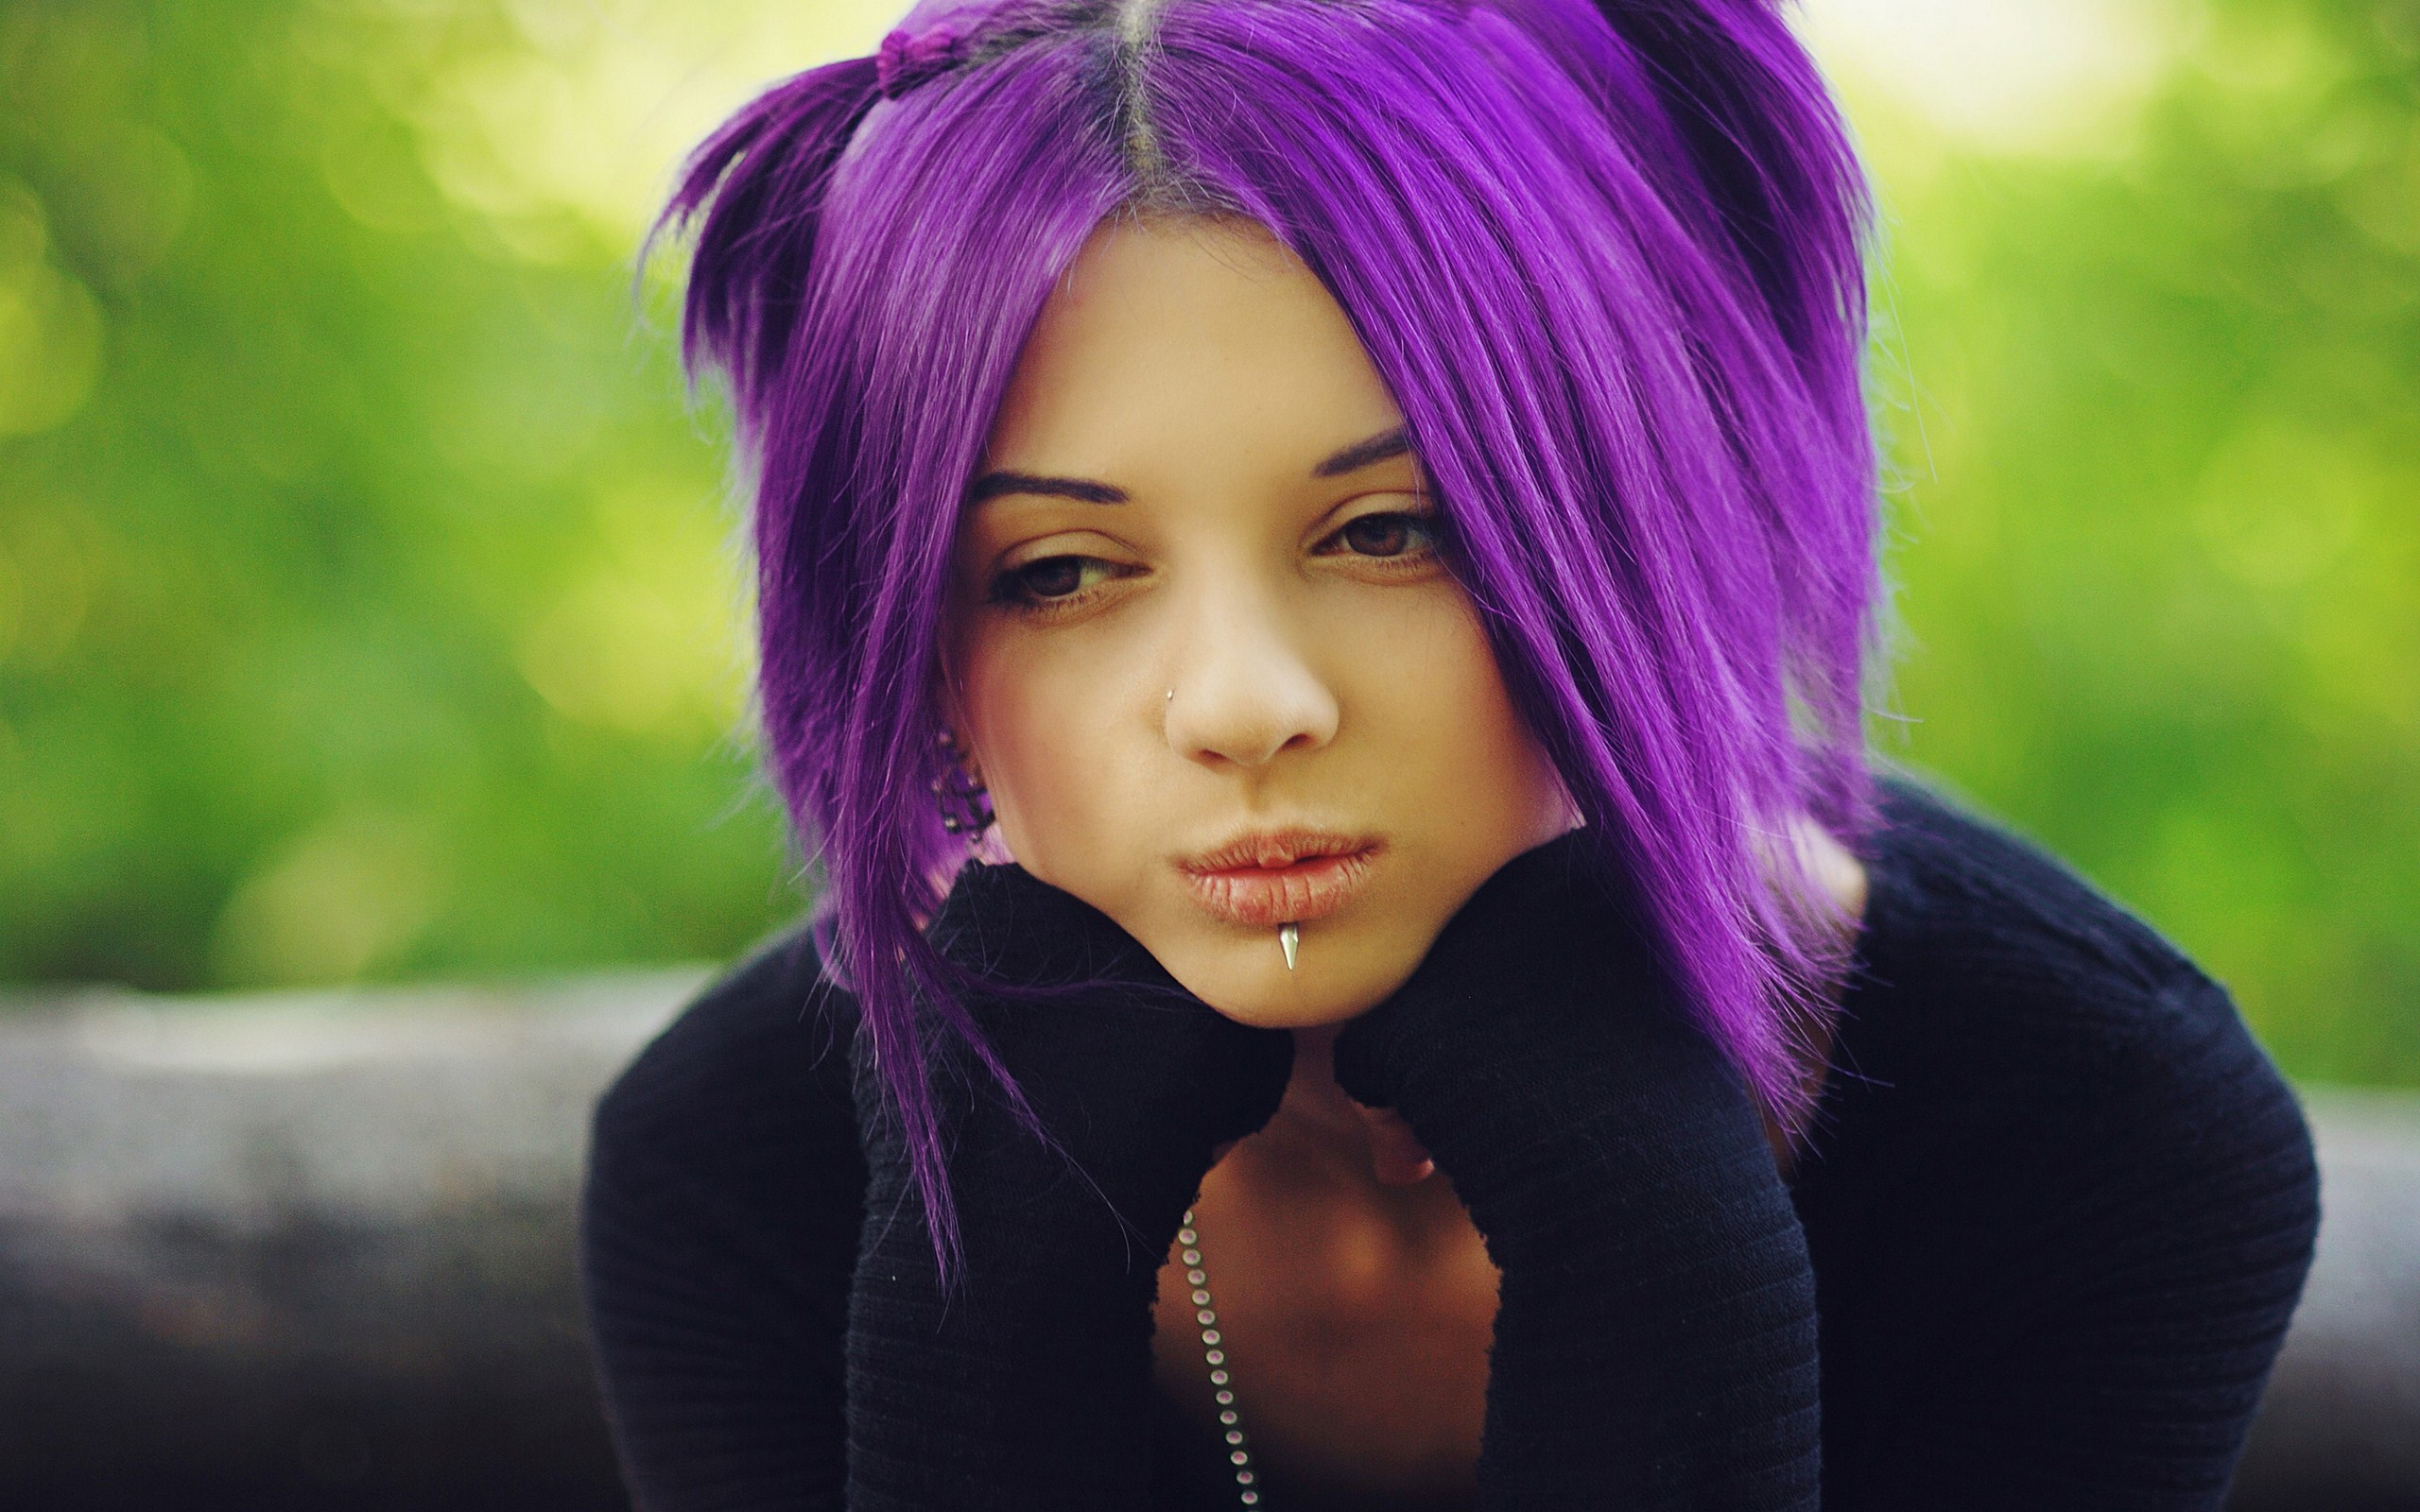 Purple Hair Wallpaper